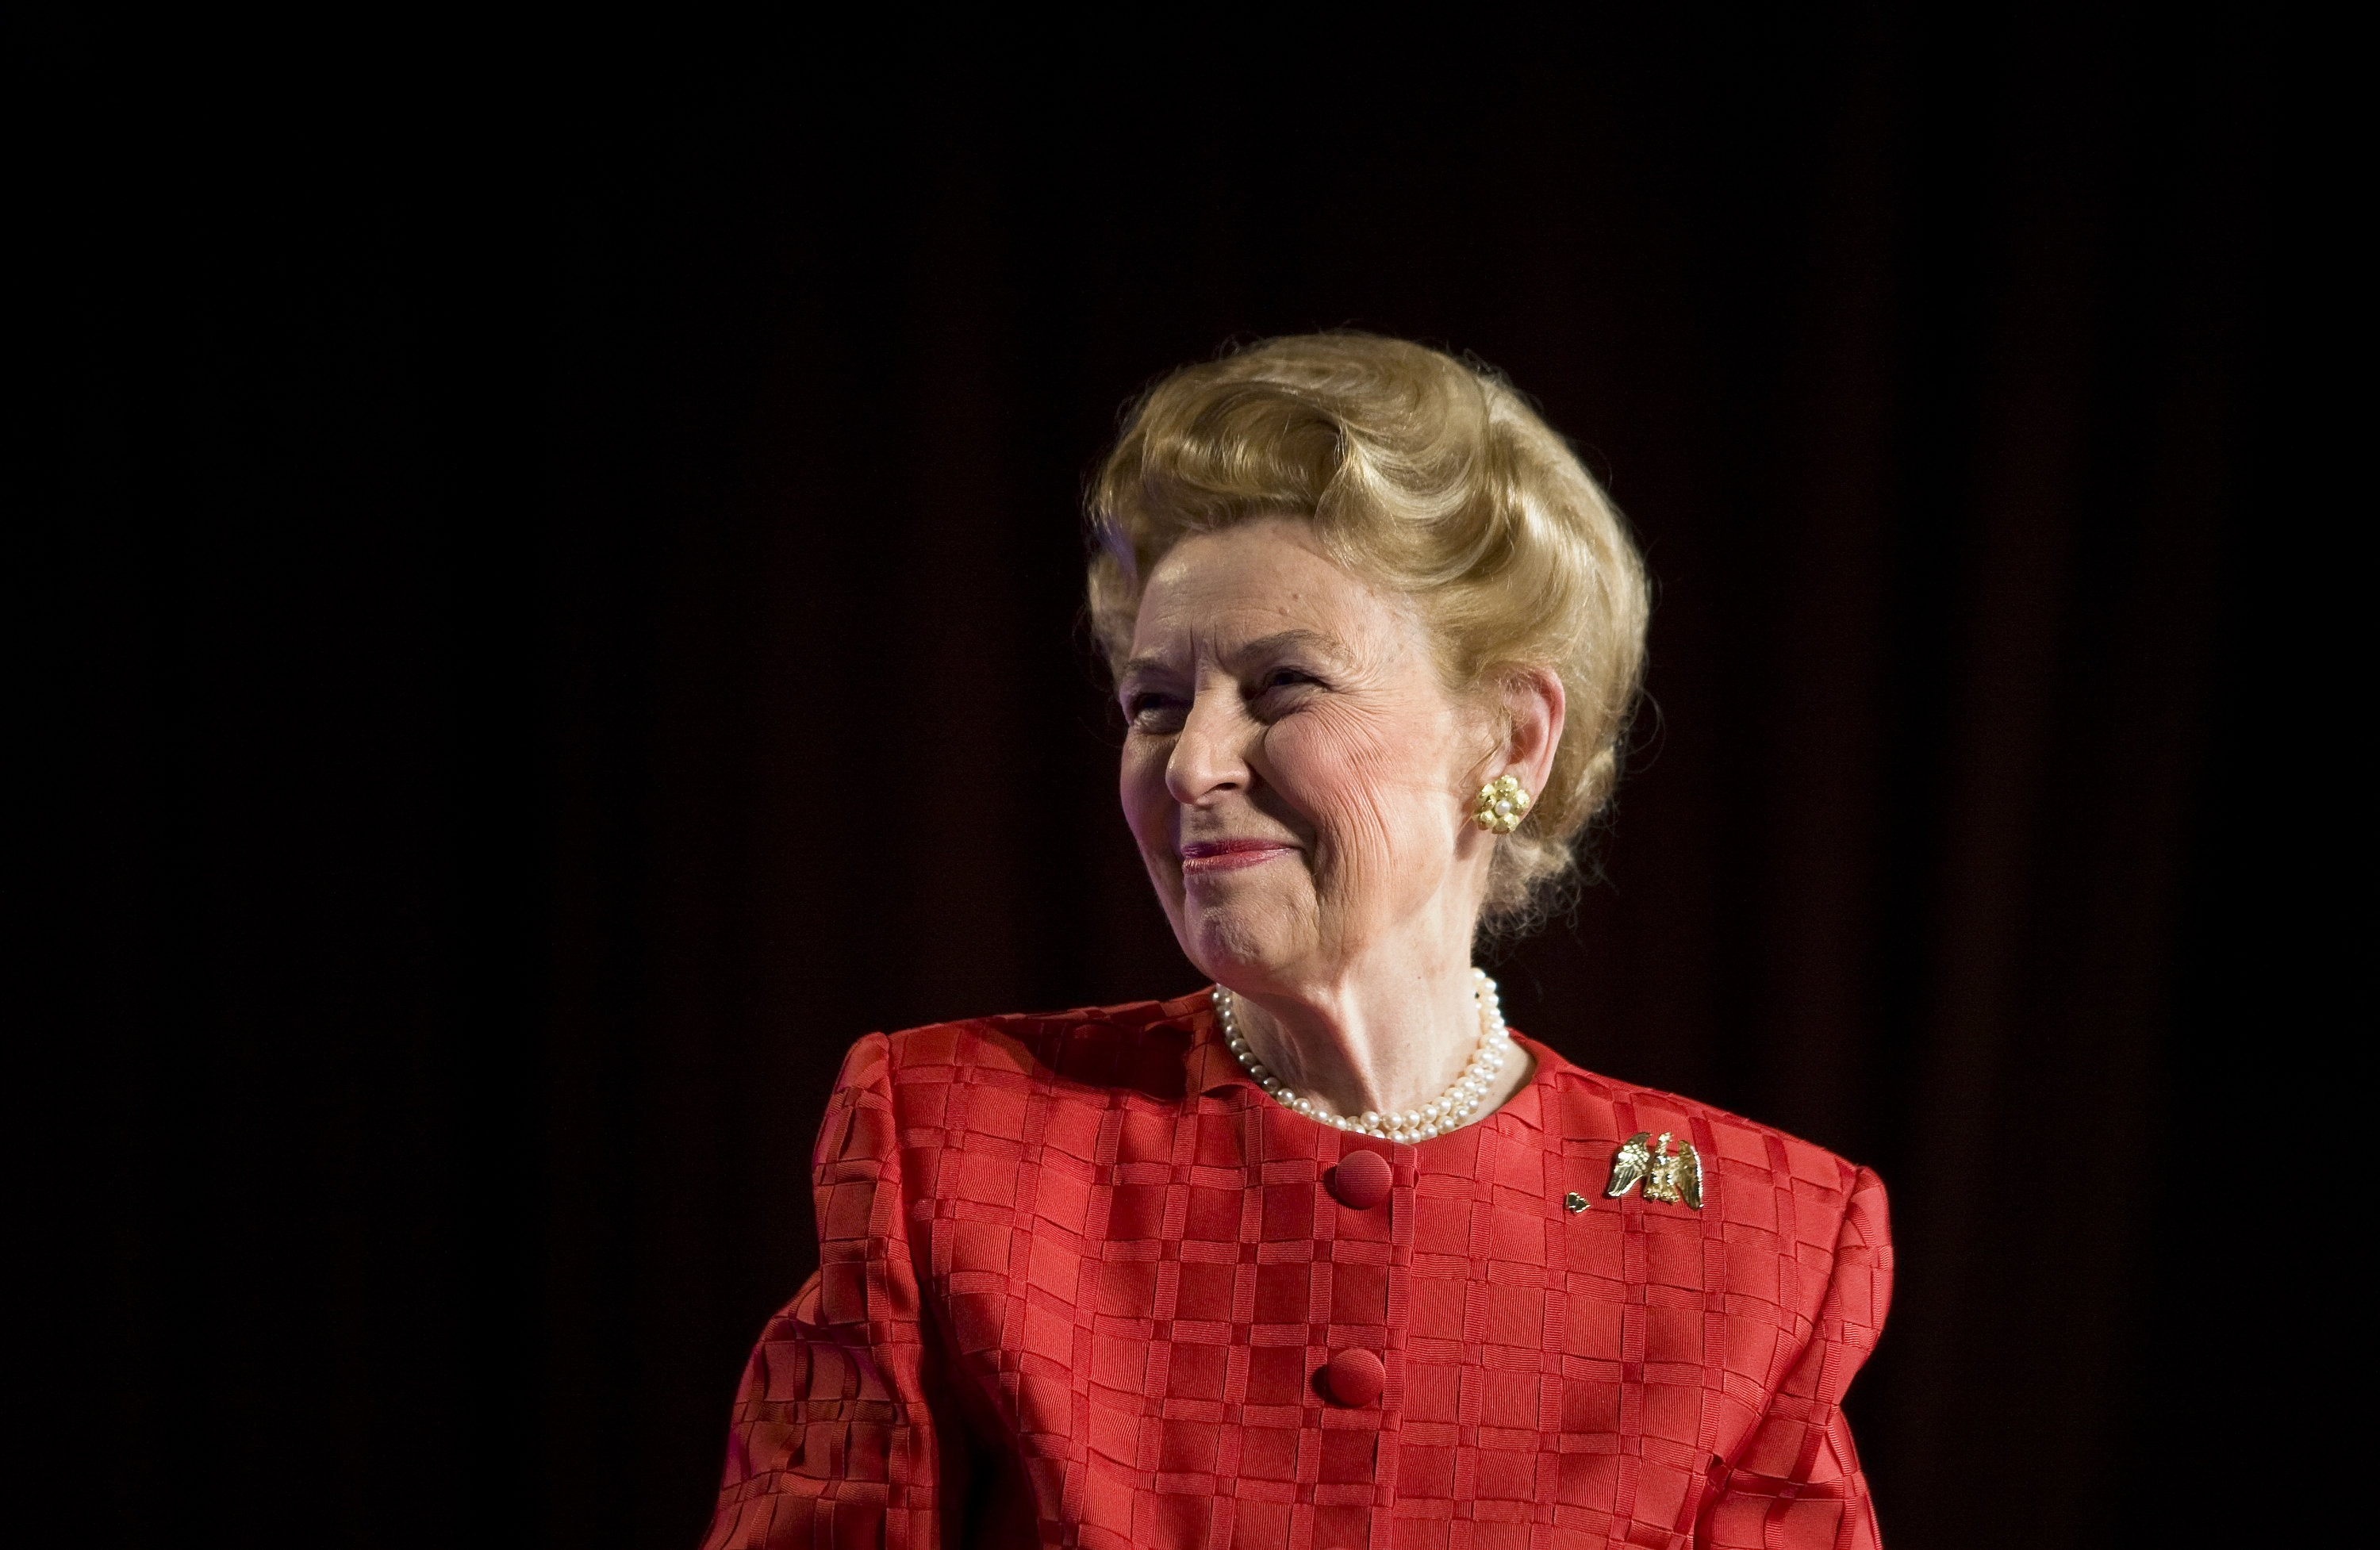 Donald Trump To Speak At Phyllis Schlafly's Funeral